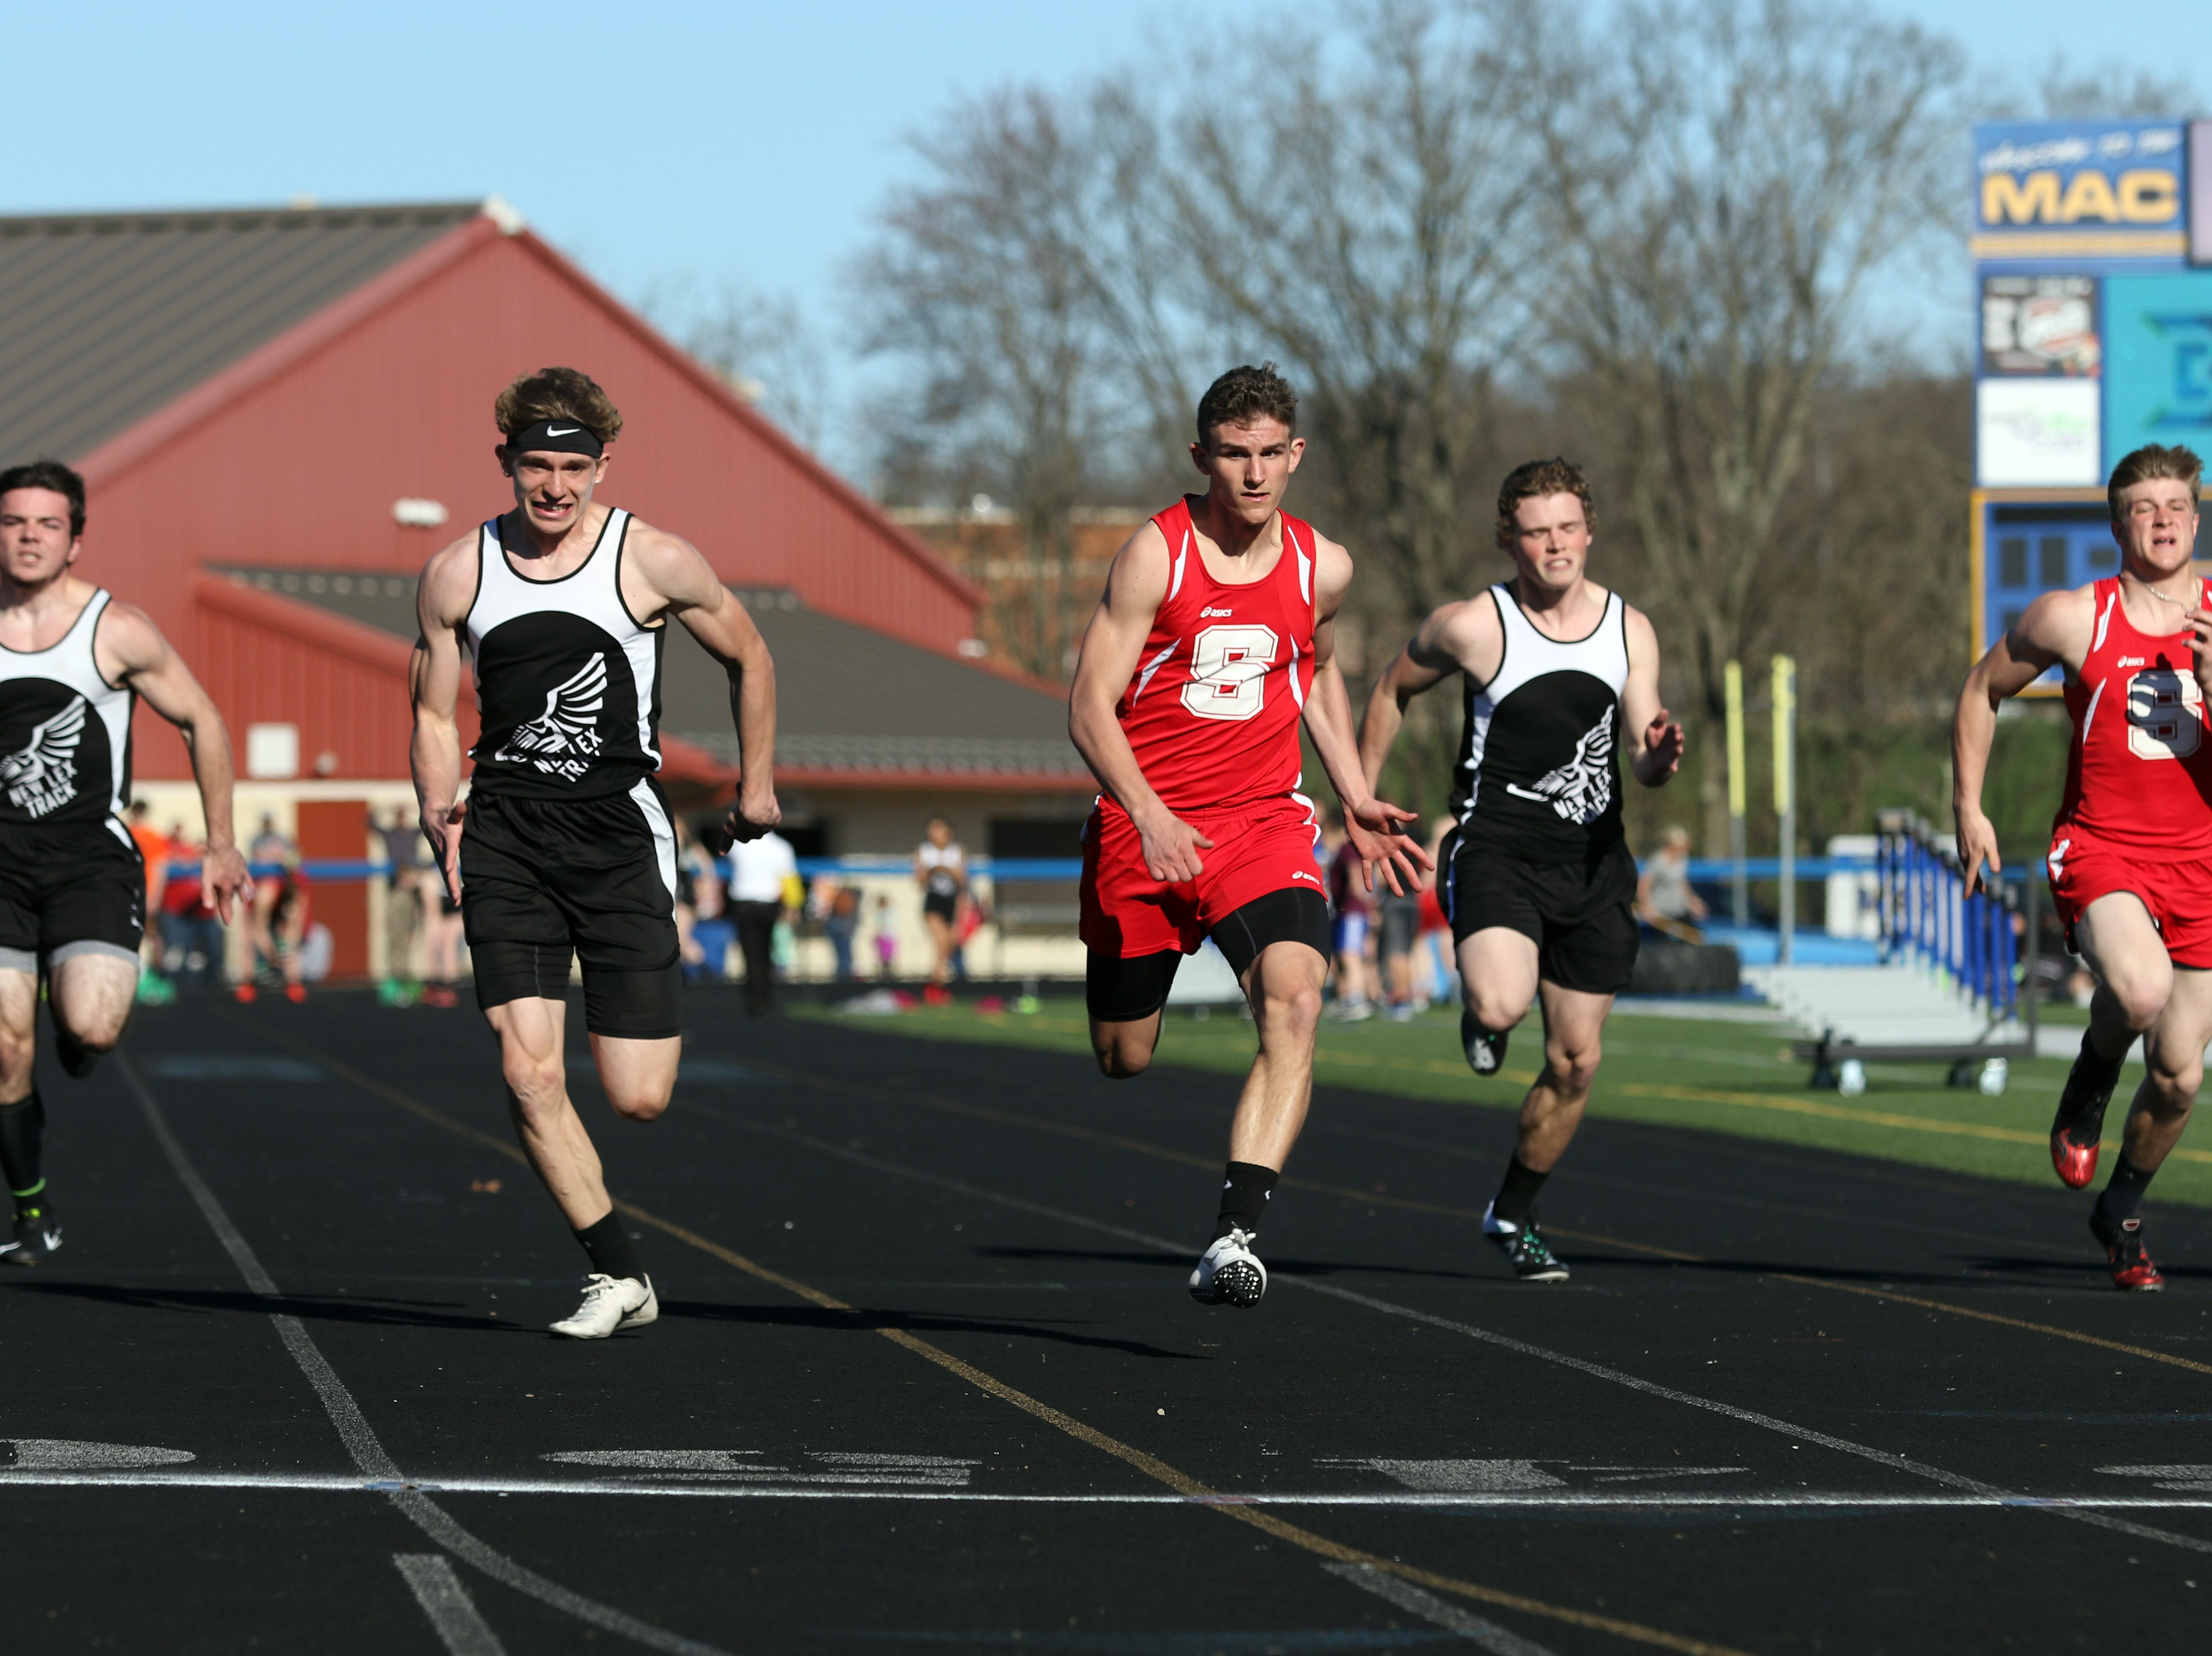 Sheridan's Jacob Rhodes and New Lexington's C.J. Ratliff battle to the end of their heat of the 100 meter dash during Tuesday's tri-meet between Sheridan, New Lexington and host Maysville.